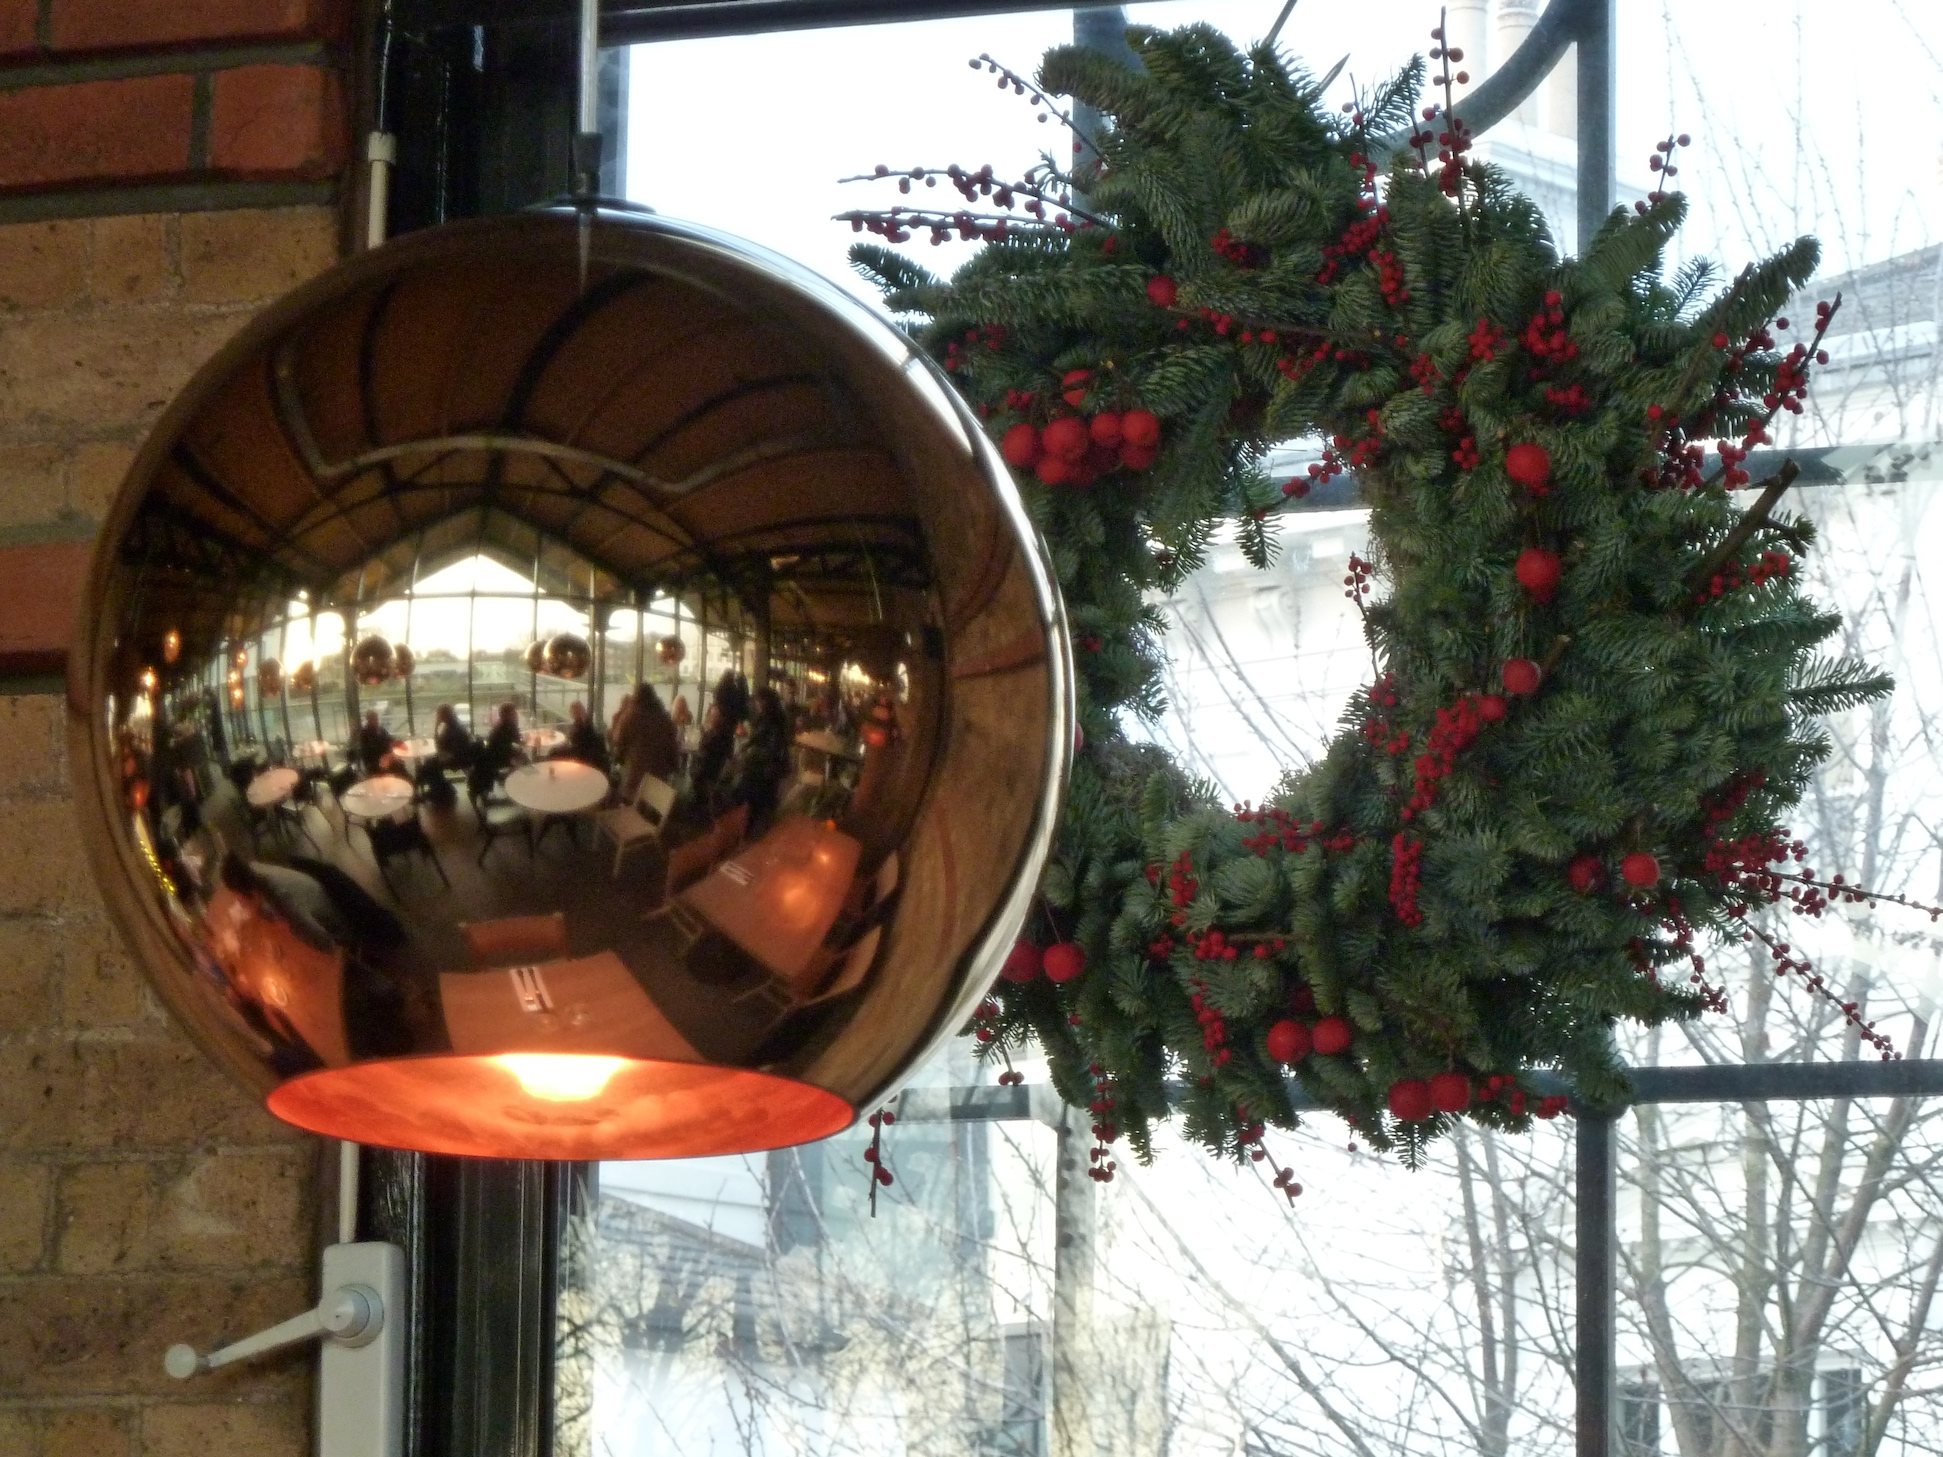 The Dock Kitchen restaurant reflected in dome copper light at Portobello Dock